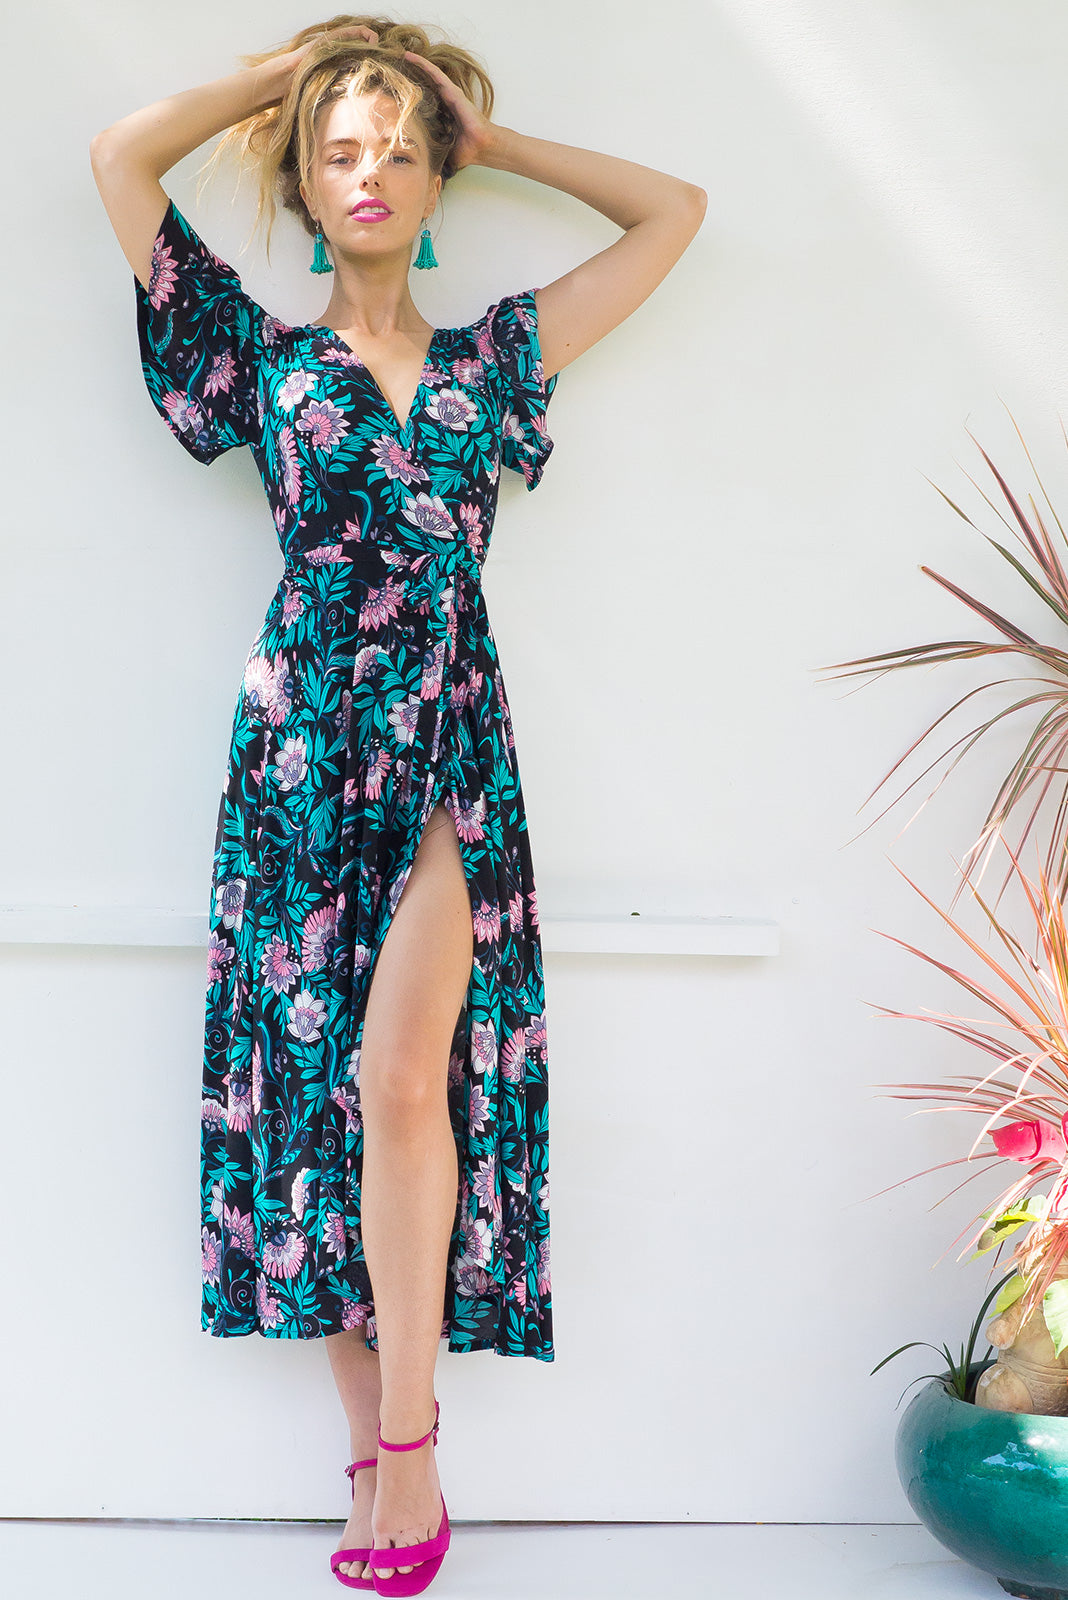 Petal Magical Black Maxi Wrap dress with flutter sleeves in a bright dark black floral print on soft rayon